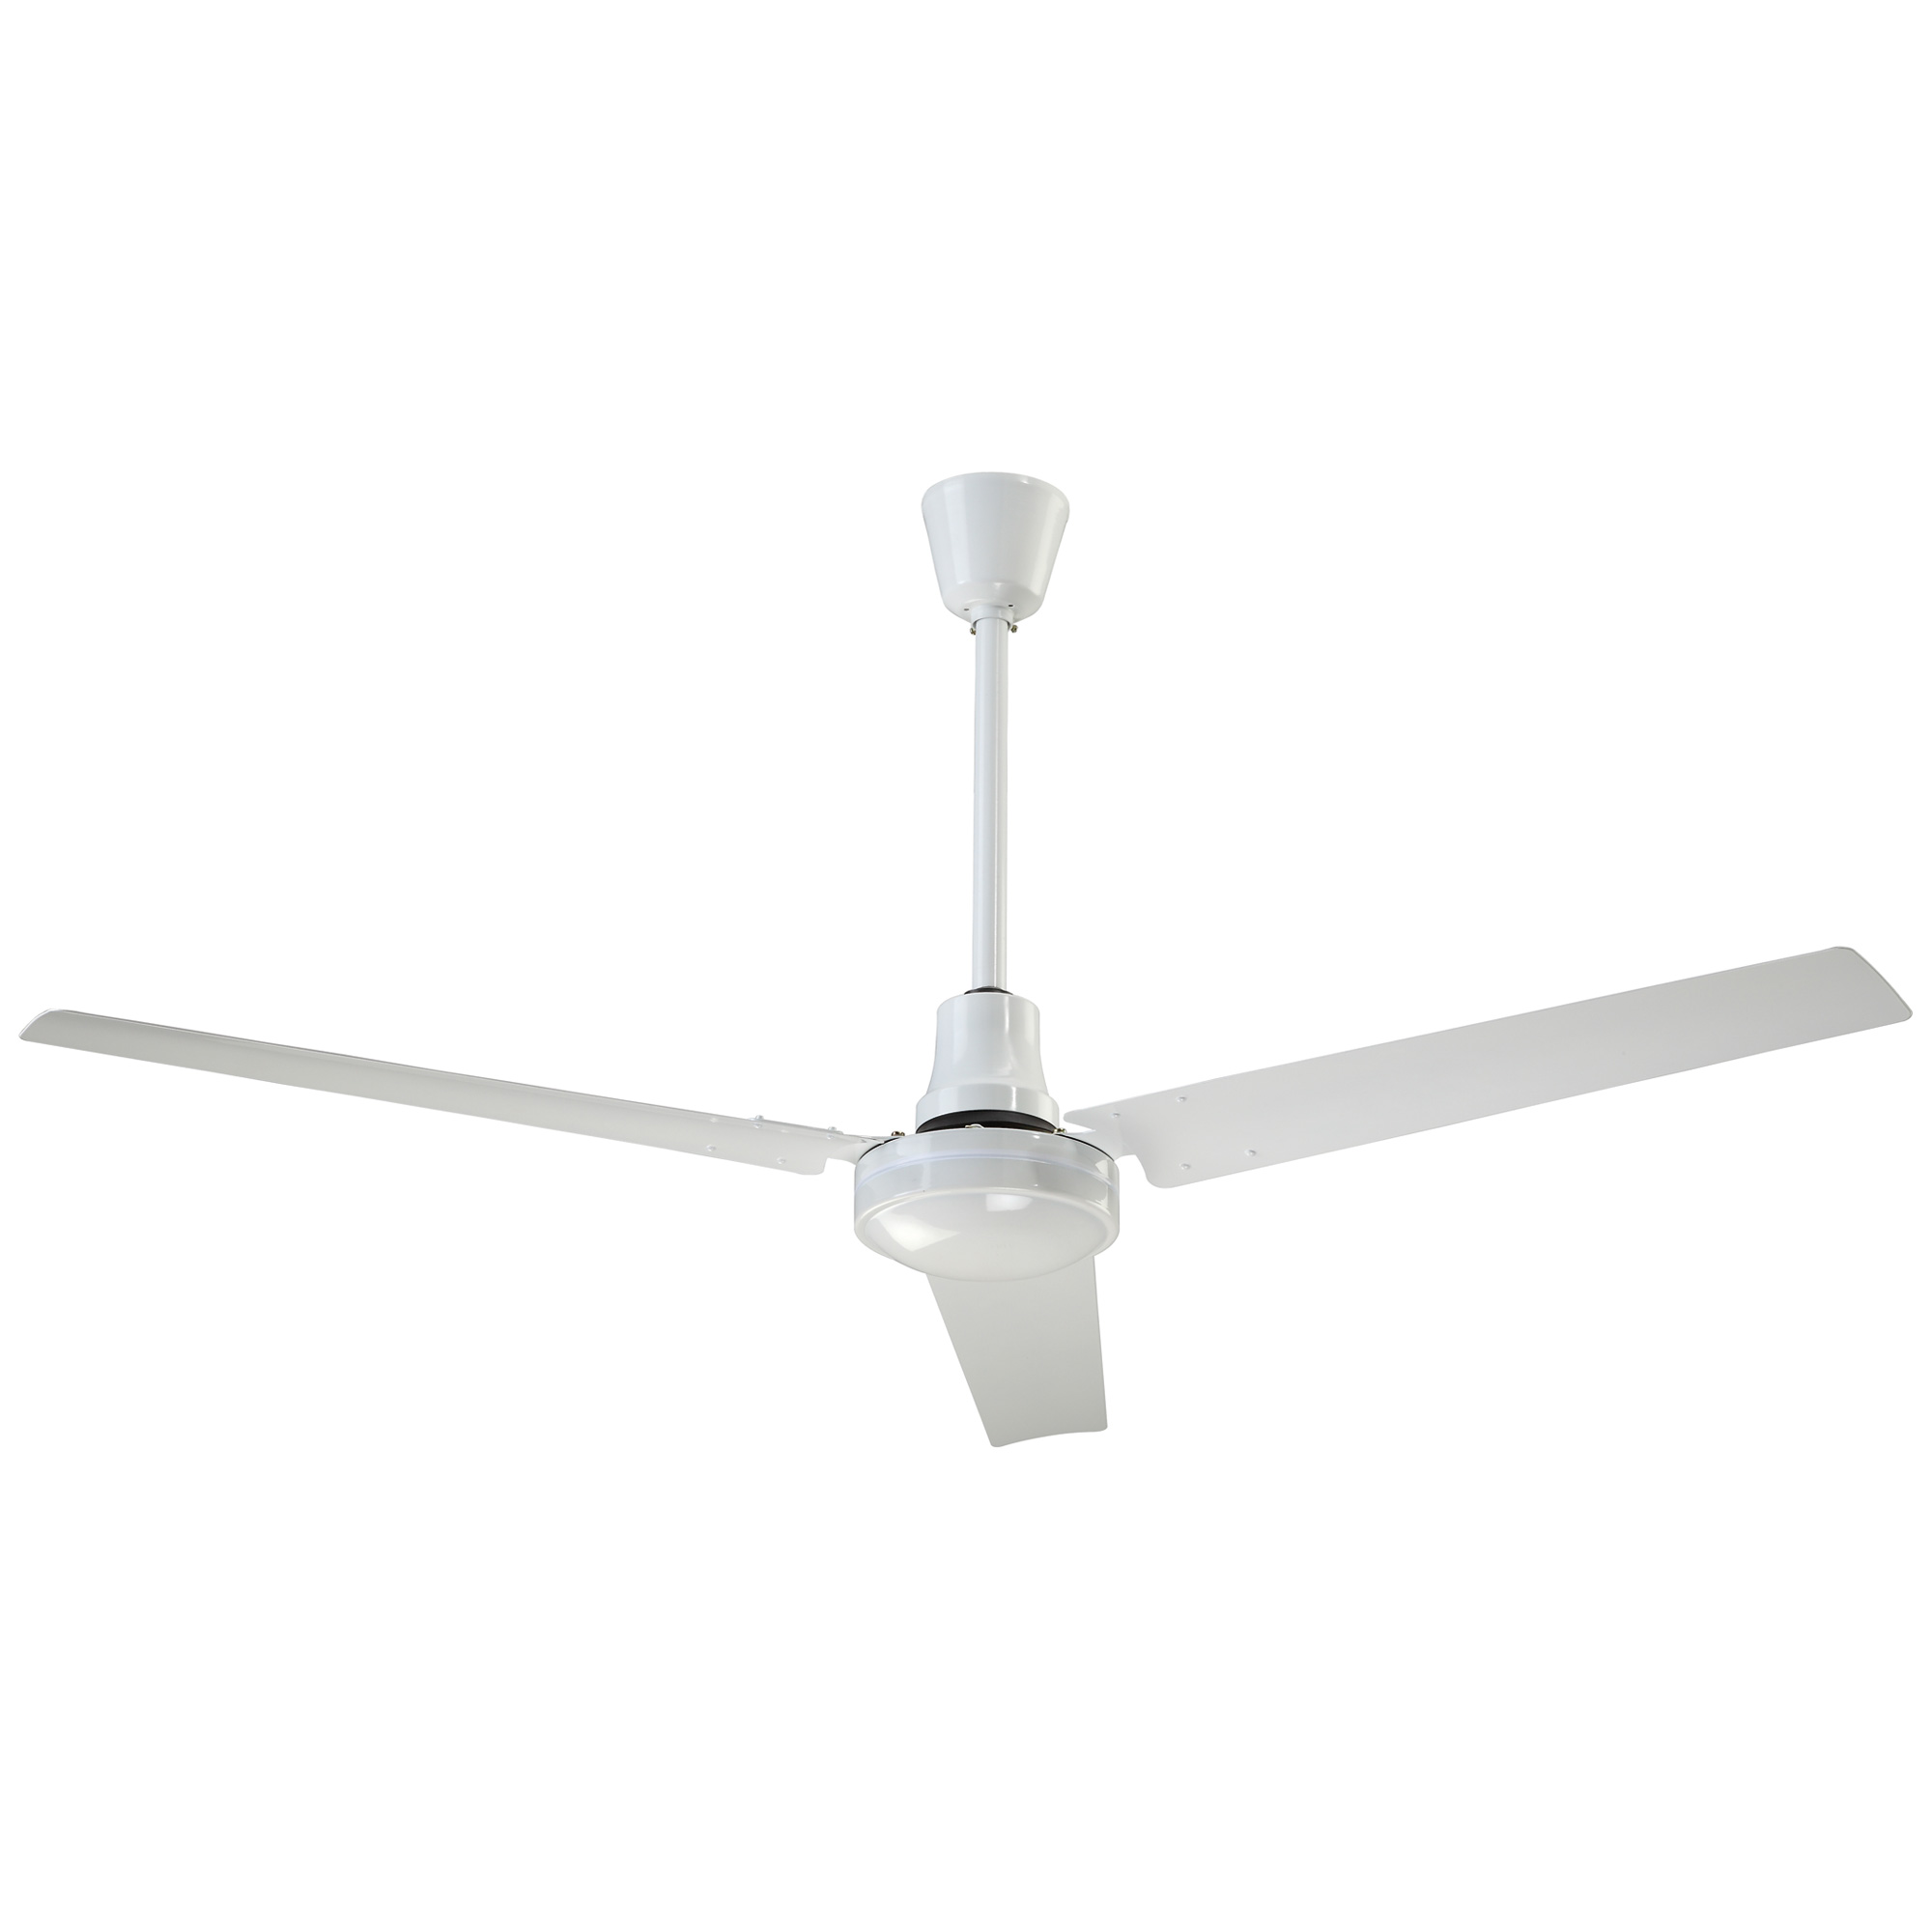 kichler ceilings of lighting inch lovely fan blade room dining phree ceiling